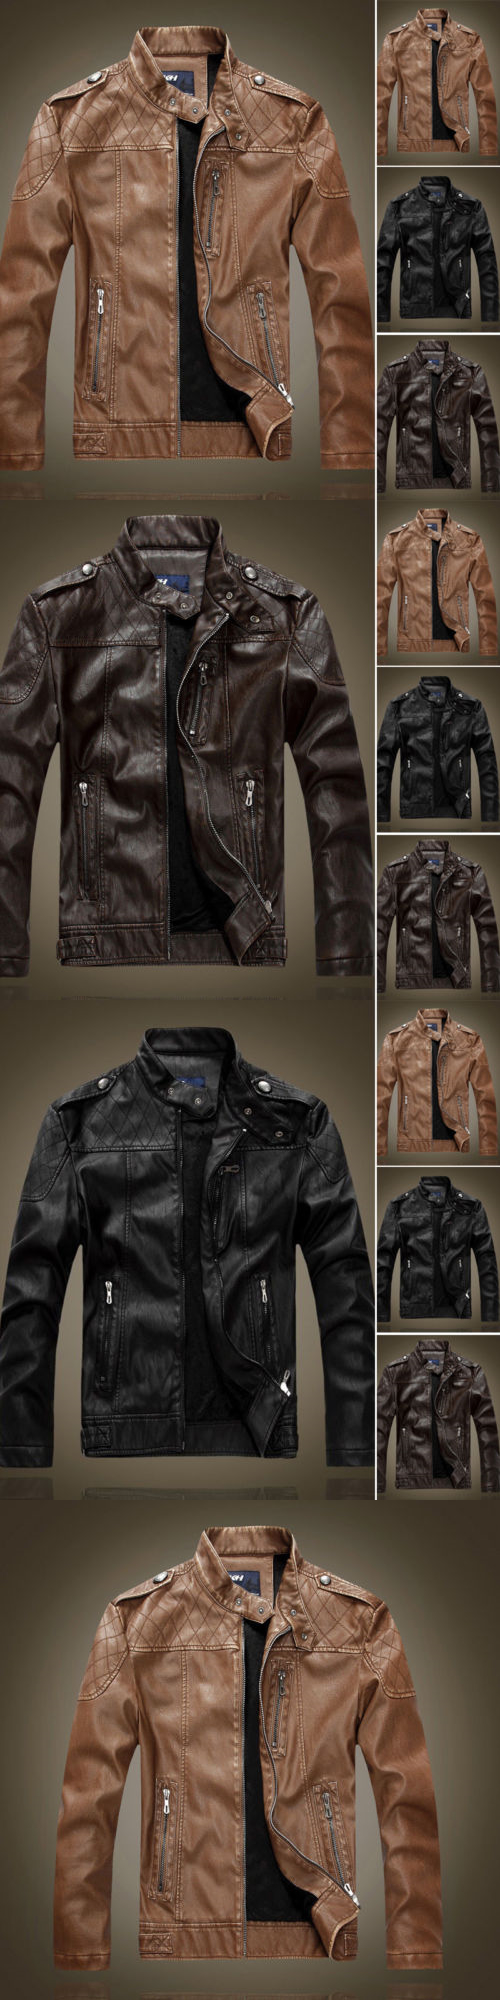 Men coats and jackets mens winter warm fleece lined biker jackets